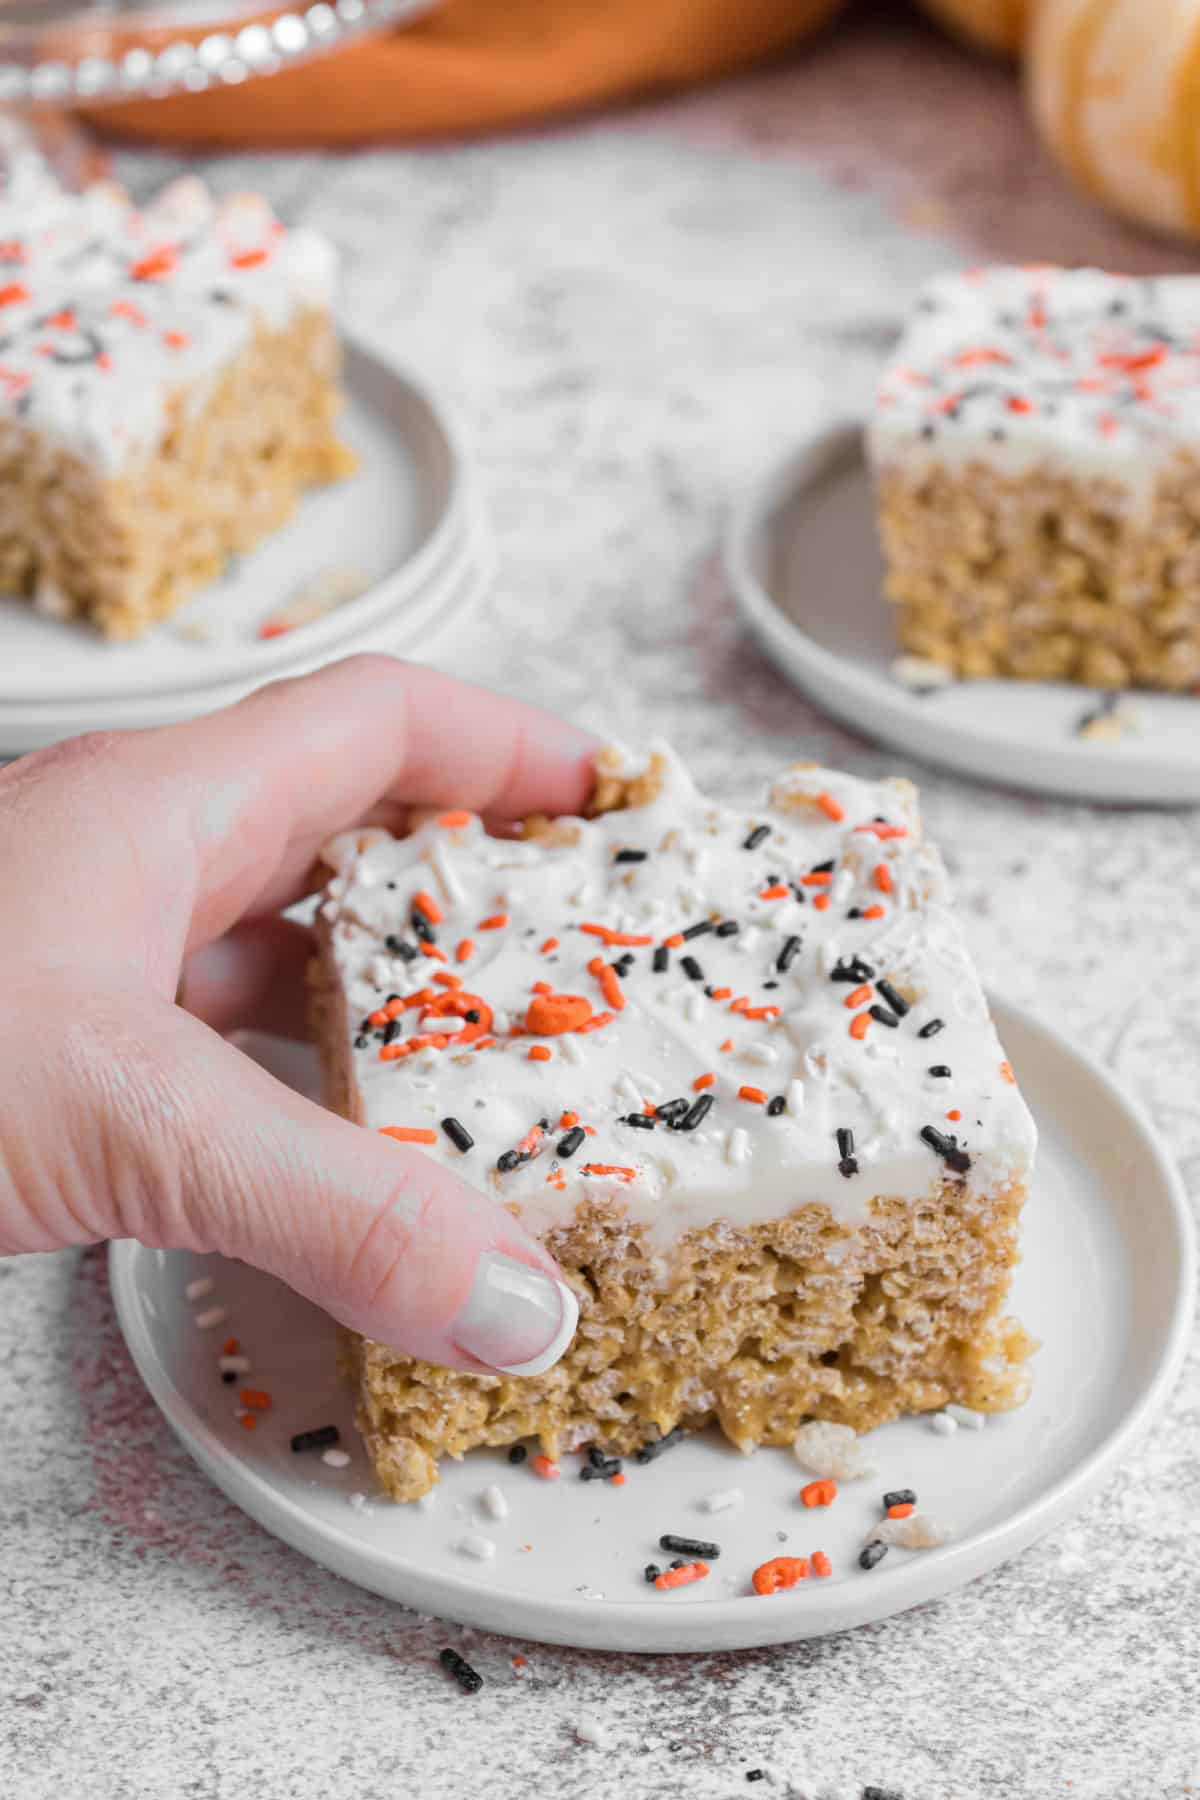 Rice krispie treat being lifted off plate.